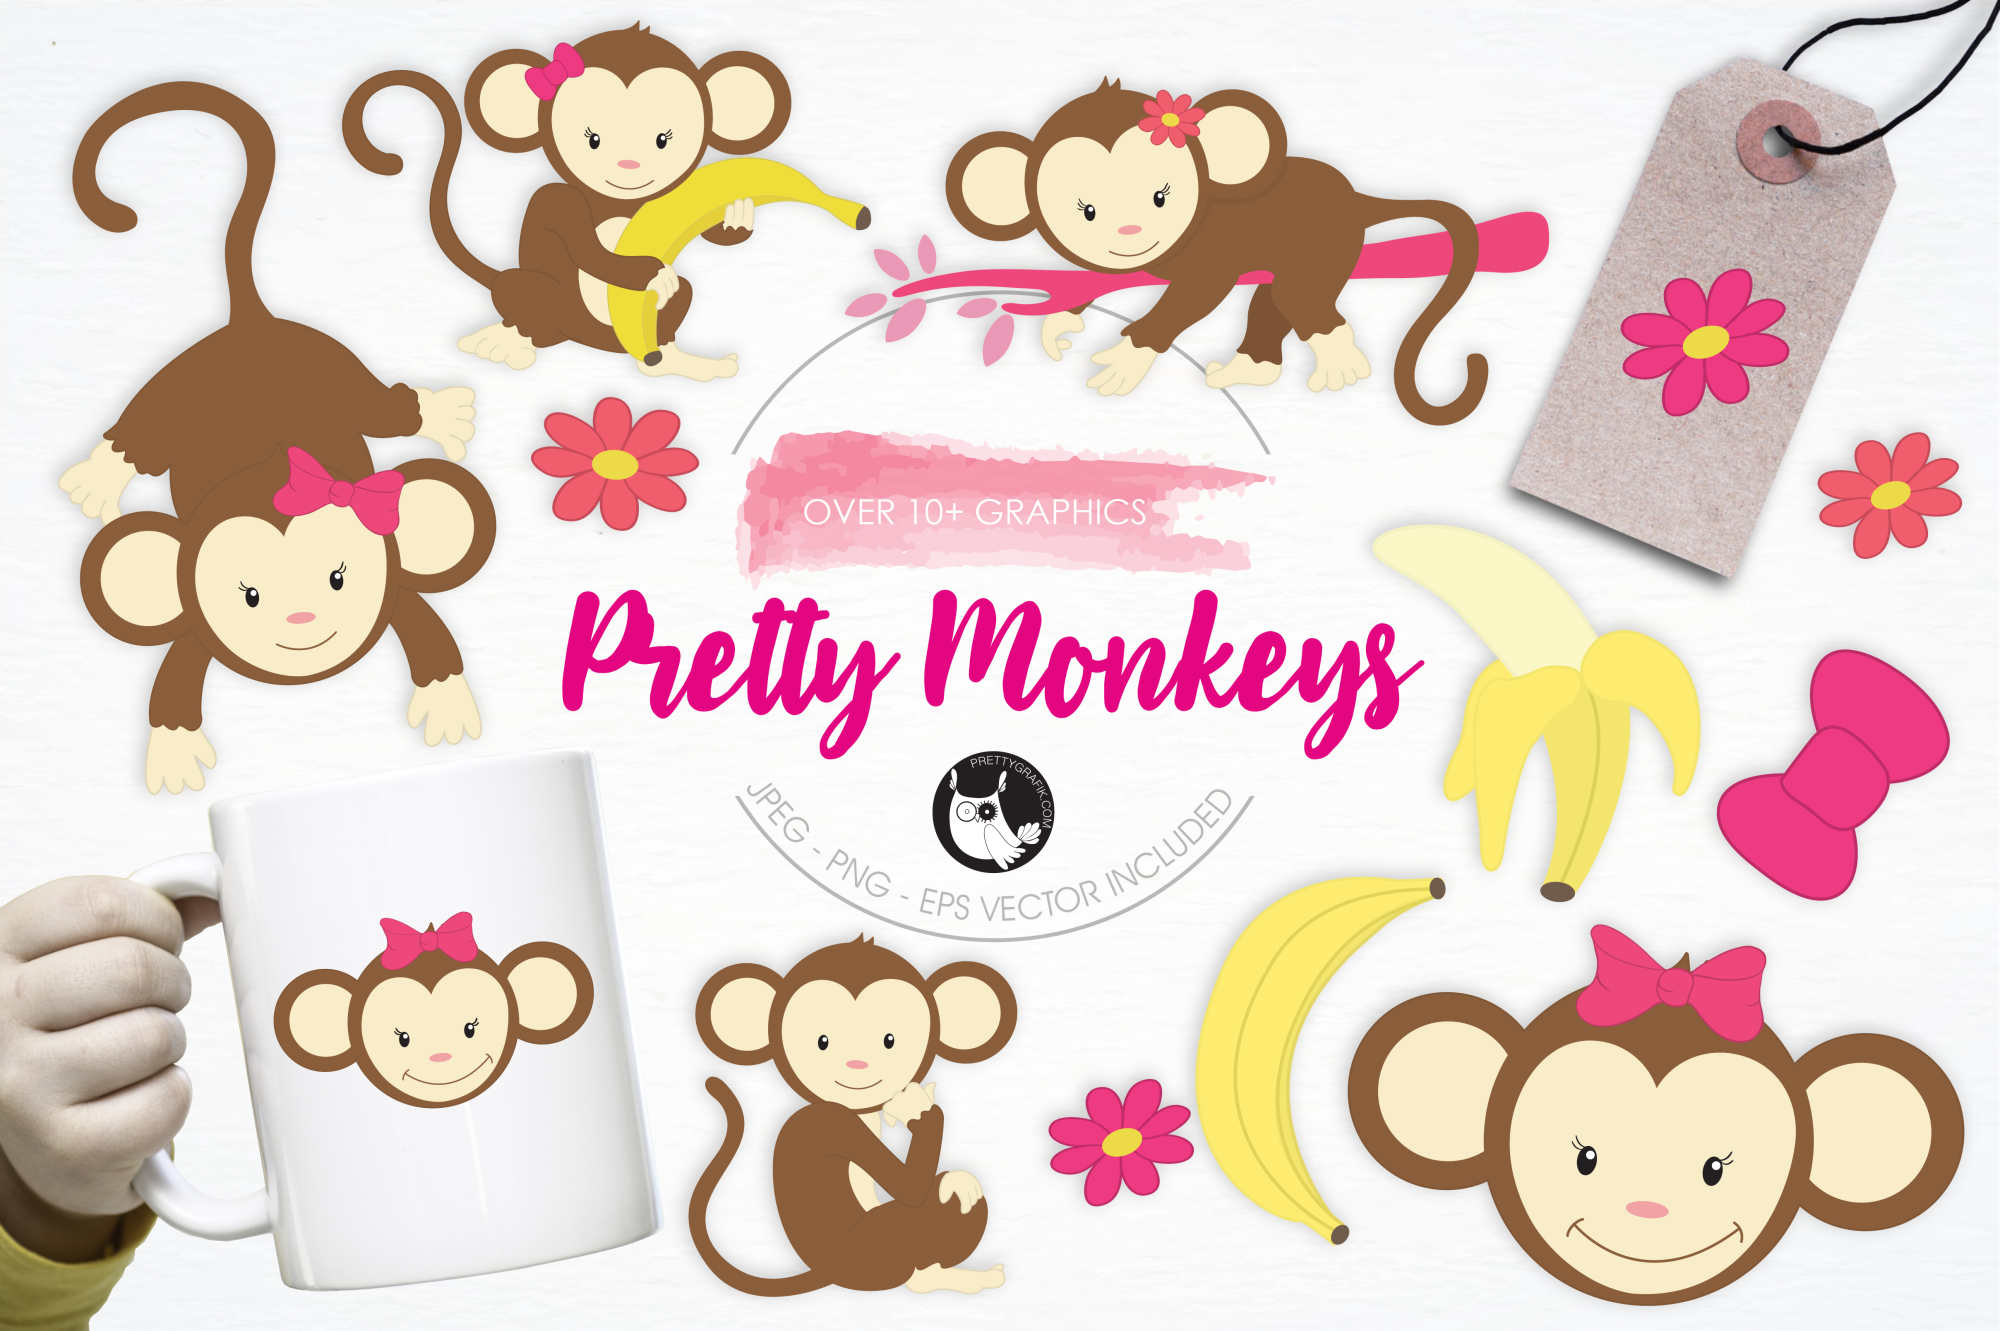 Pretty Monkeys graphics and illustrations example image 1